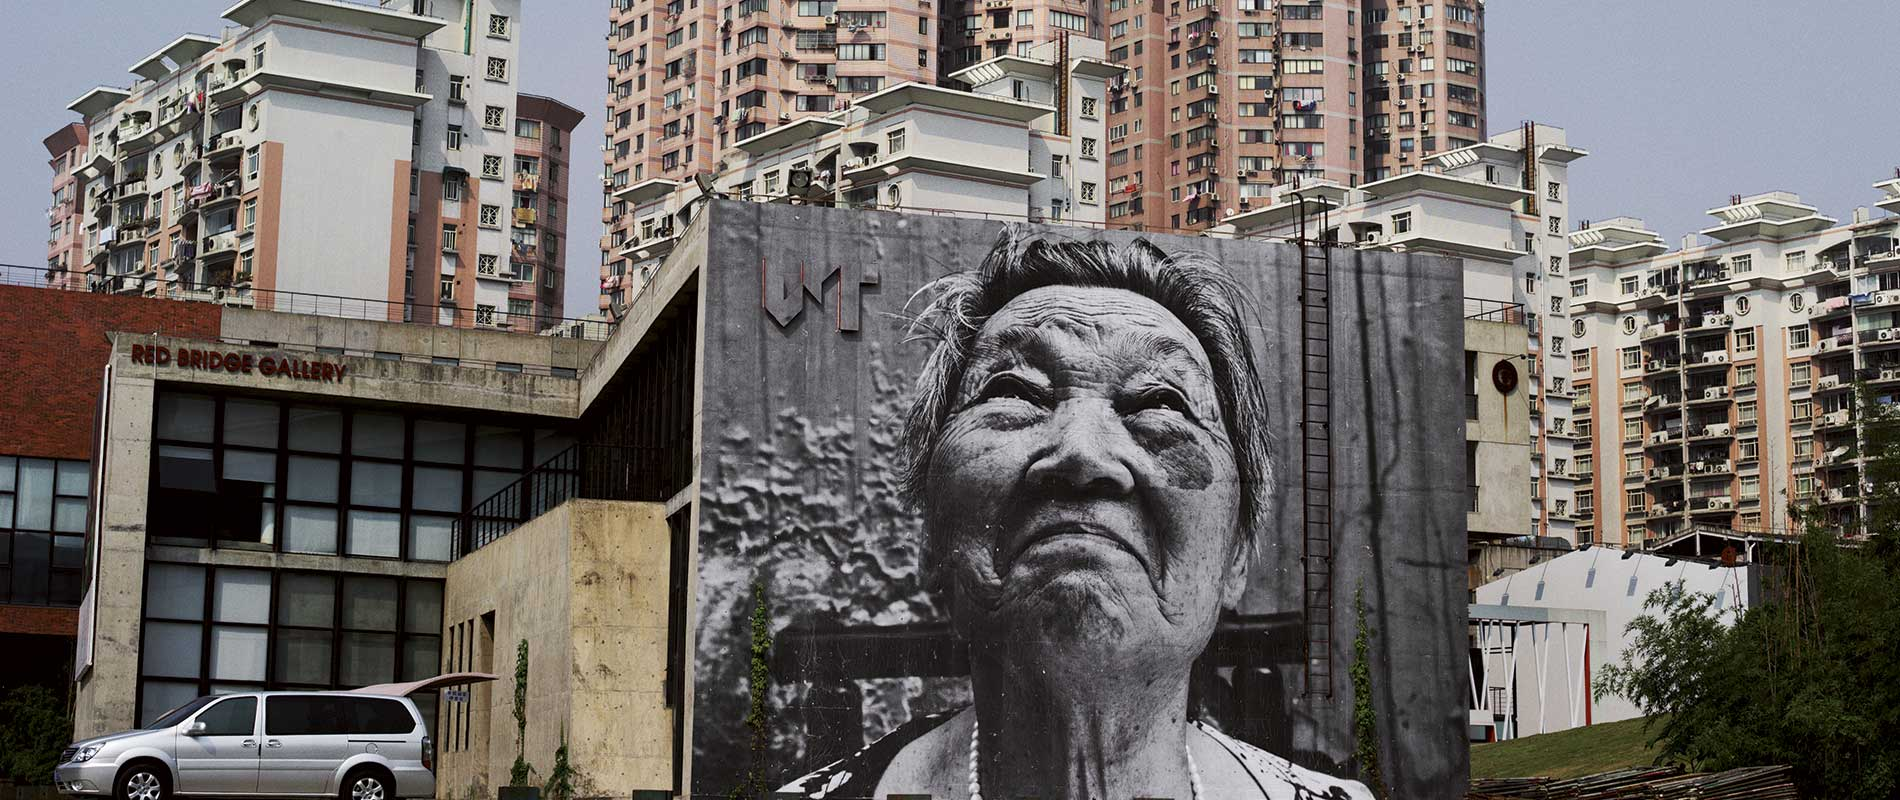 wrinkles portraits on buildings